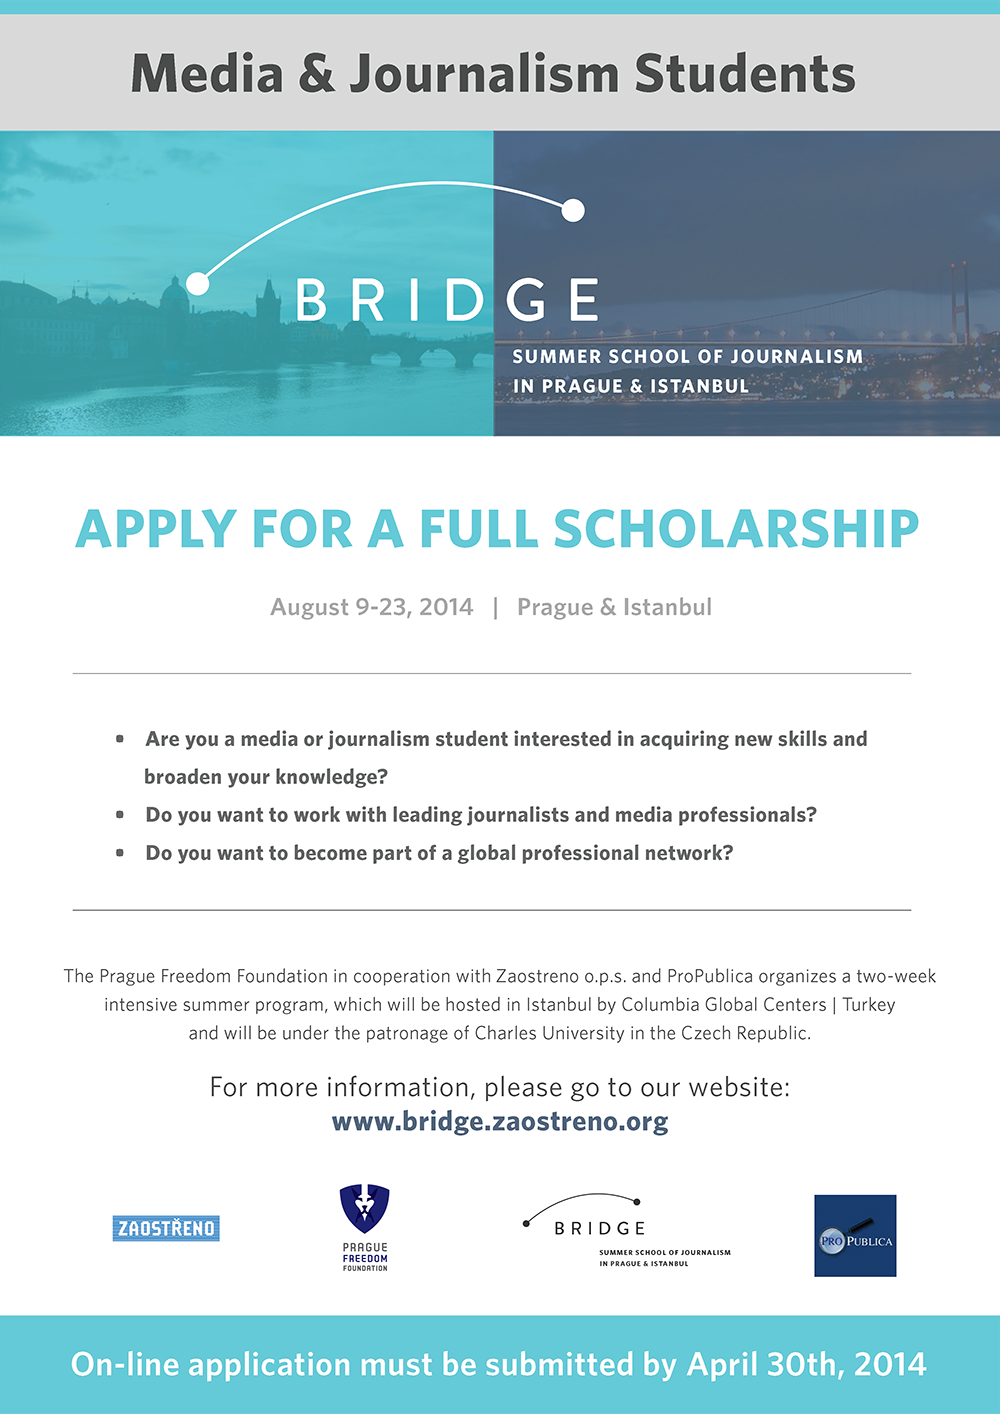 Apply Now for Scholarships to Study Journalism in Istanbul and Prague